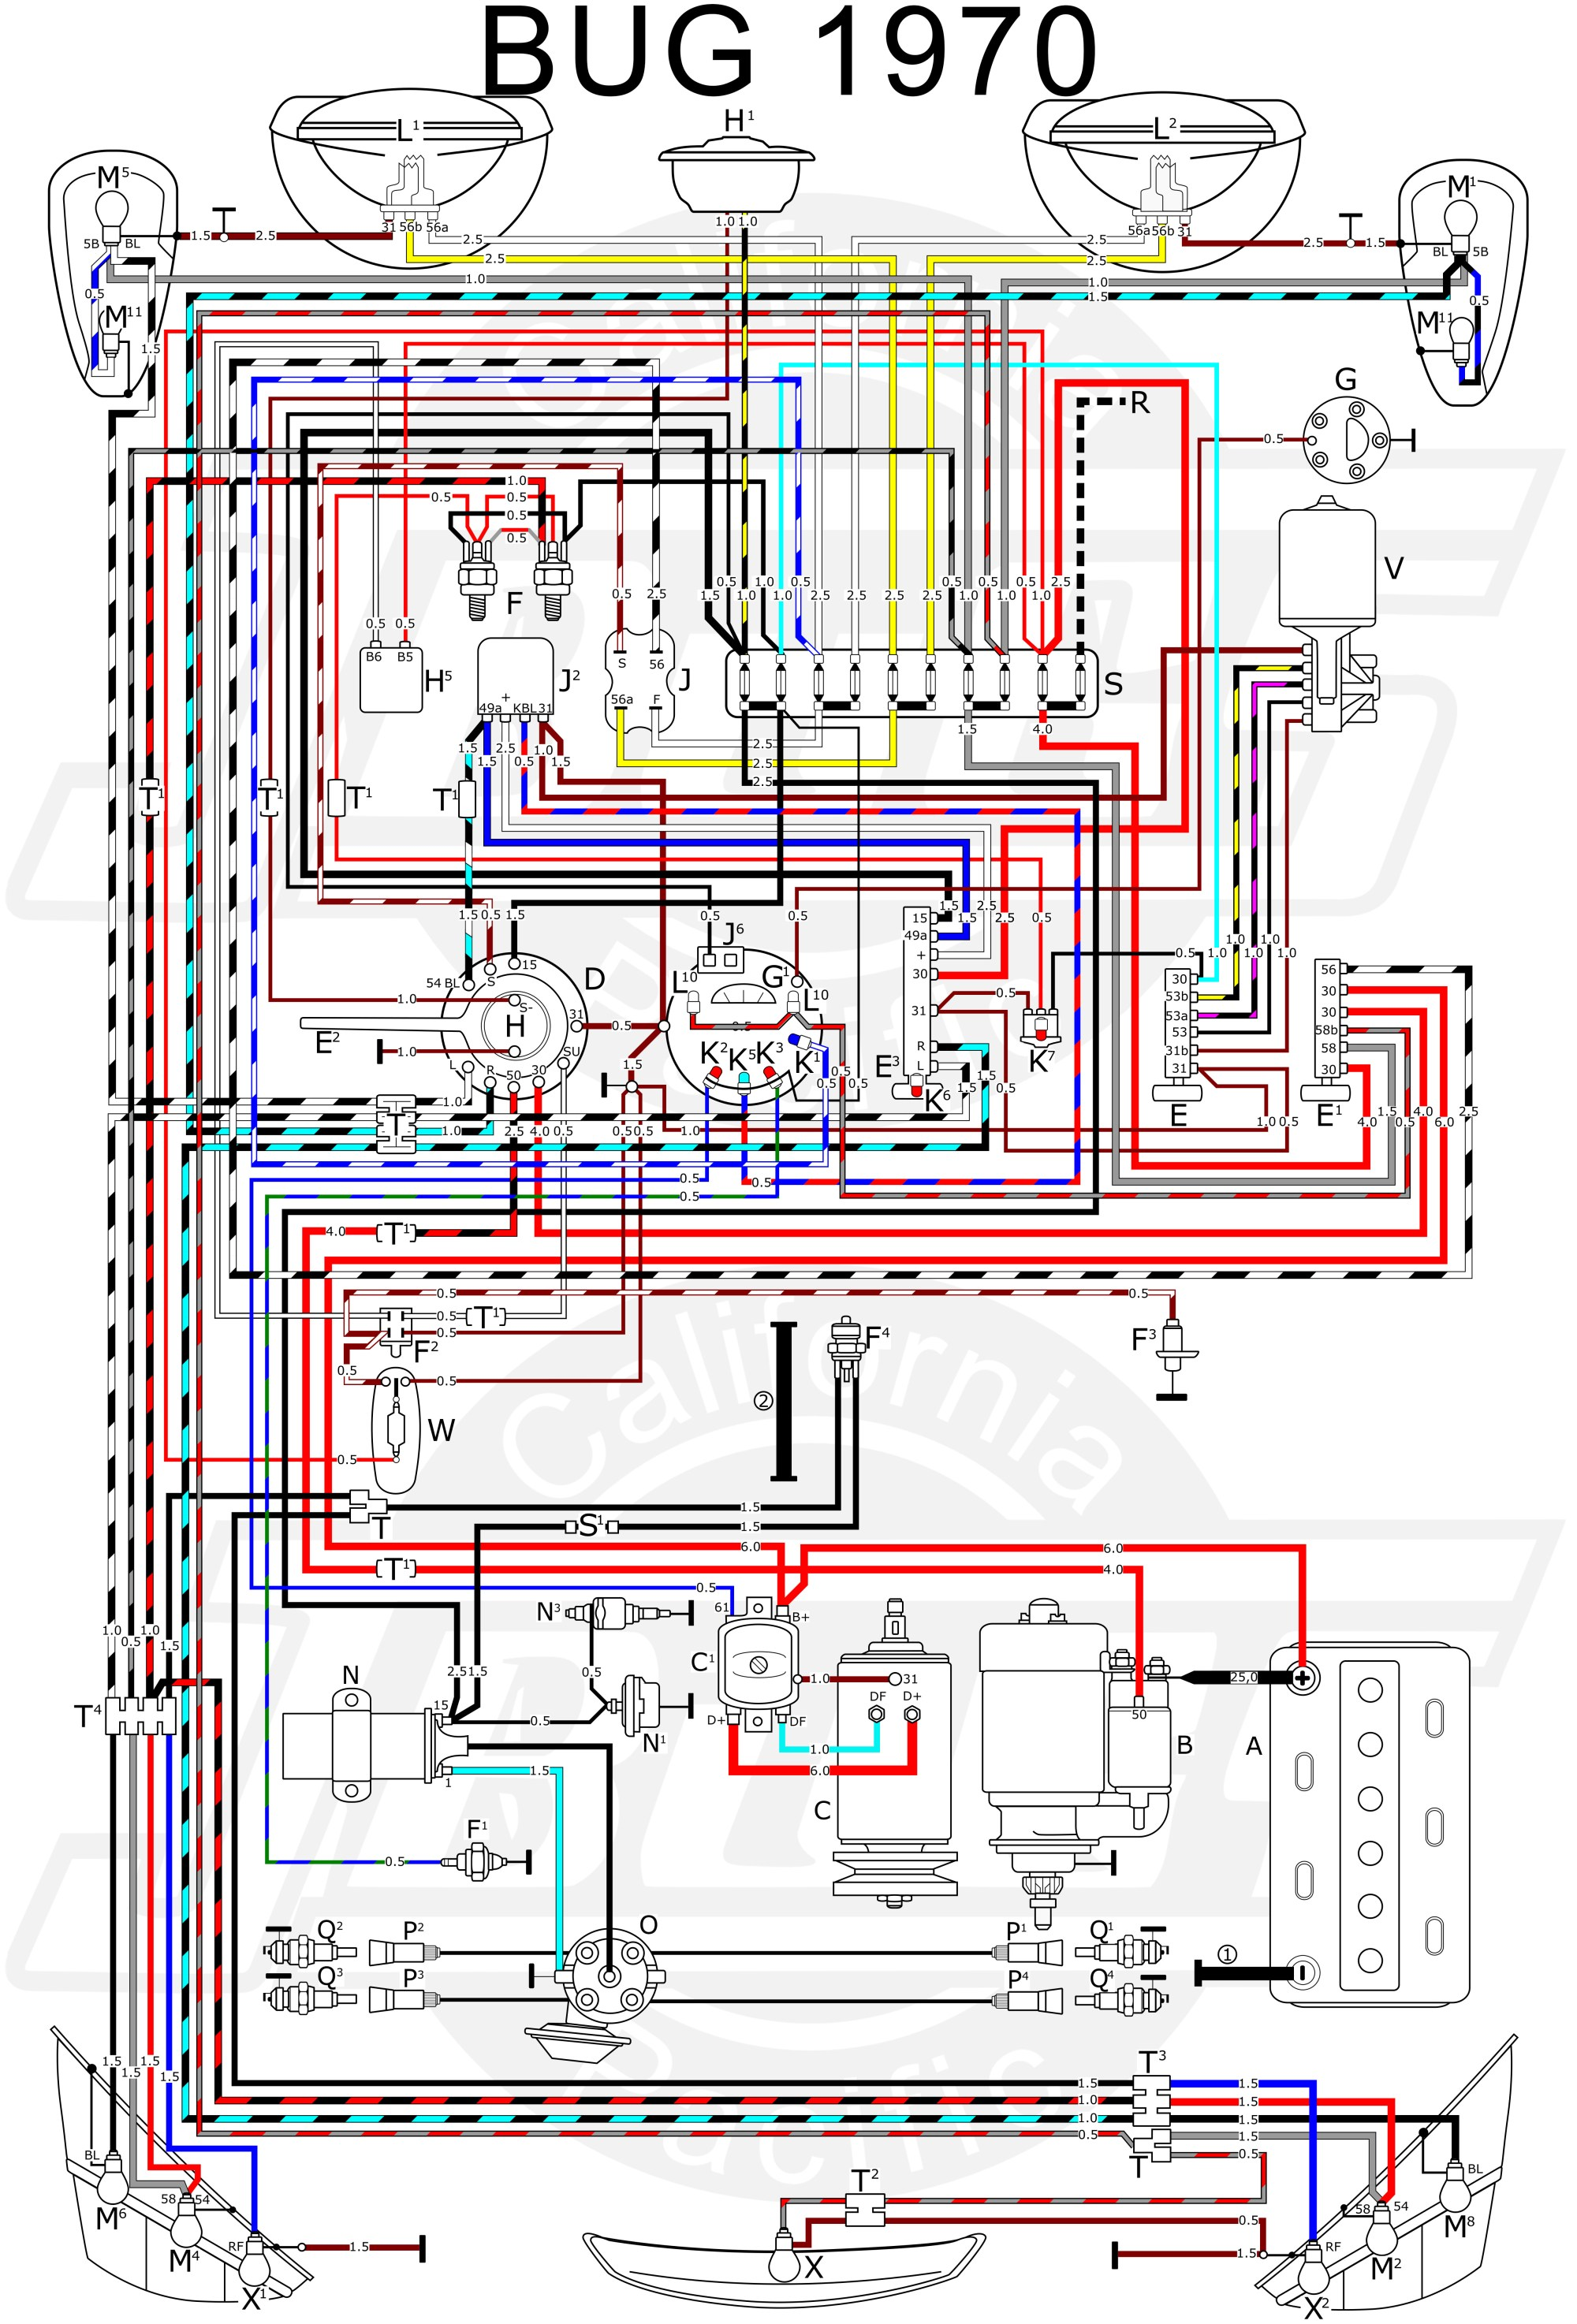 hight resolution of 1972 vw engine diagram wiring diagram sort odyssey pcm location moreover 1971 vw beetle headlight switch wiring